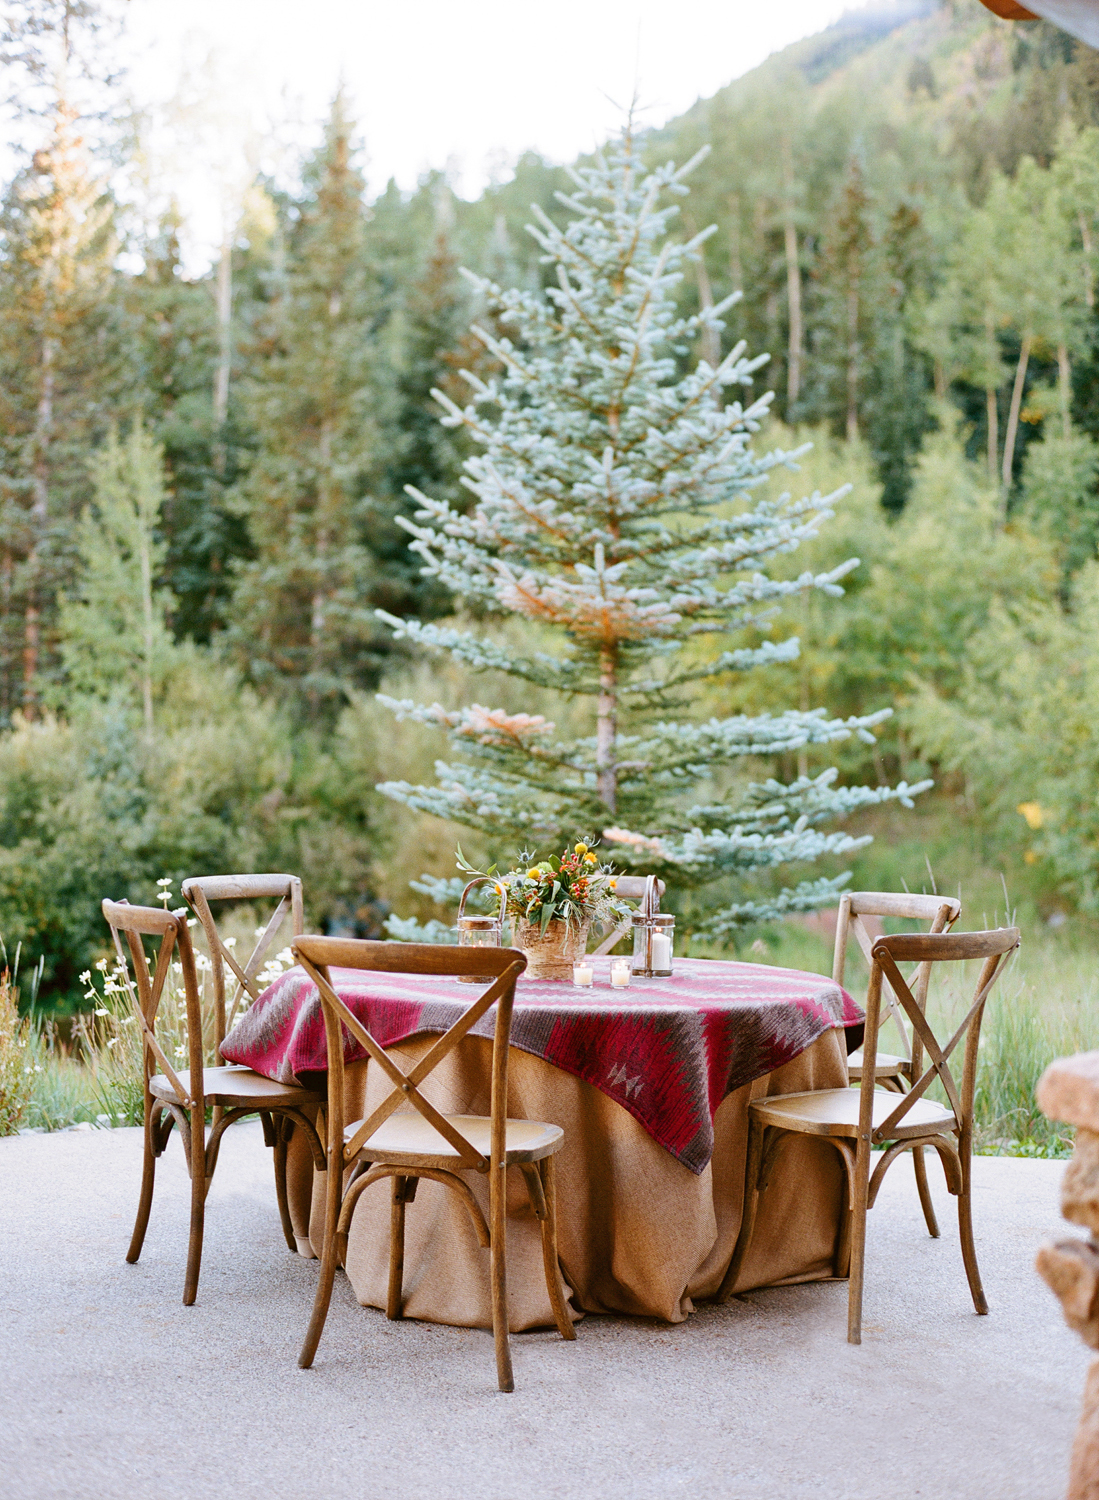 Outdoor farm table with rustic table setting